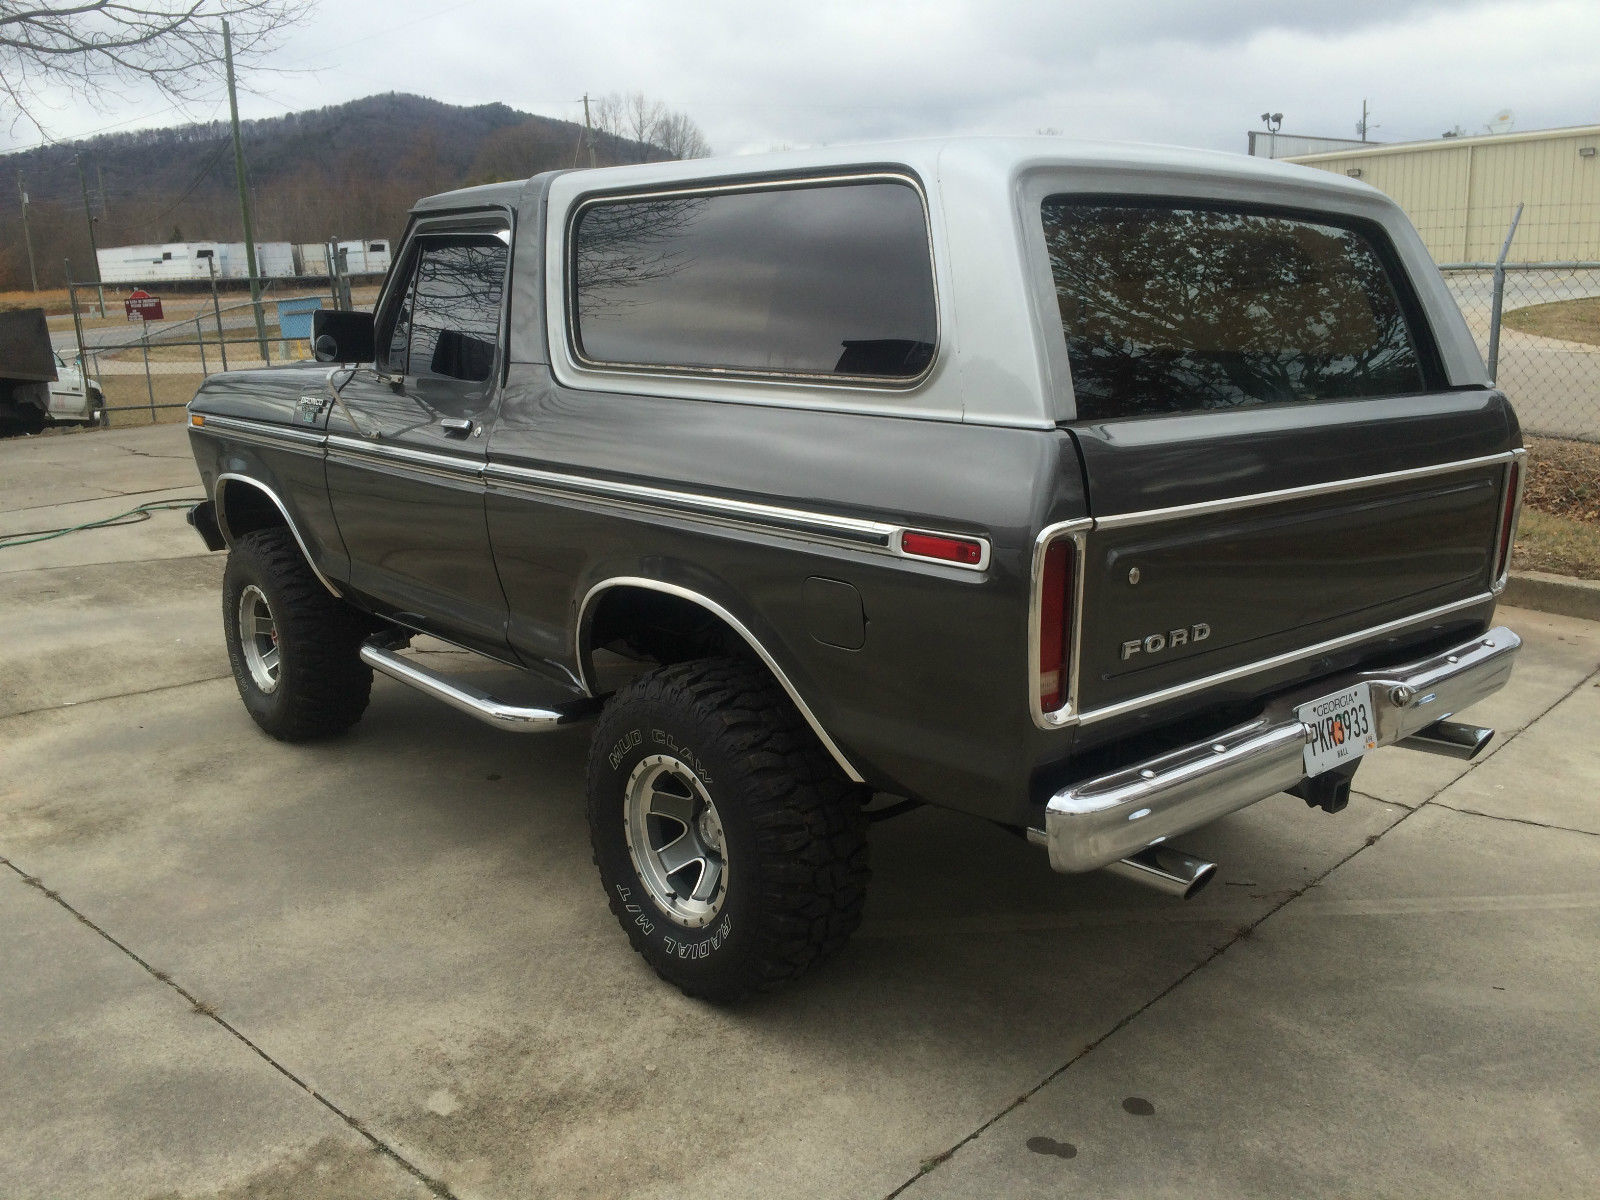 How To Put Air In Car Tires >> 1978 Ford Bronco in excellent condition. 460 big block 4X4 - Classic Ford Bronco 1978 for sale